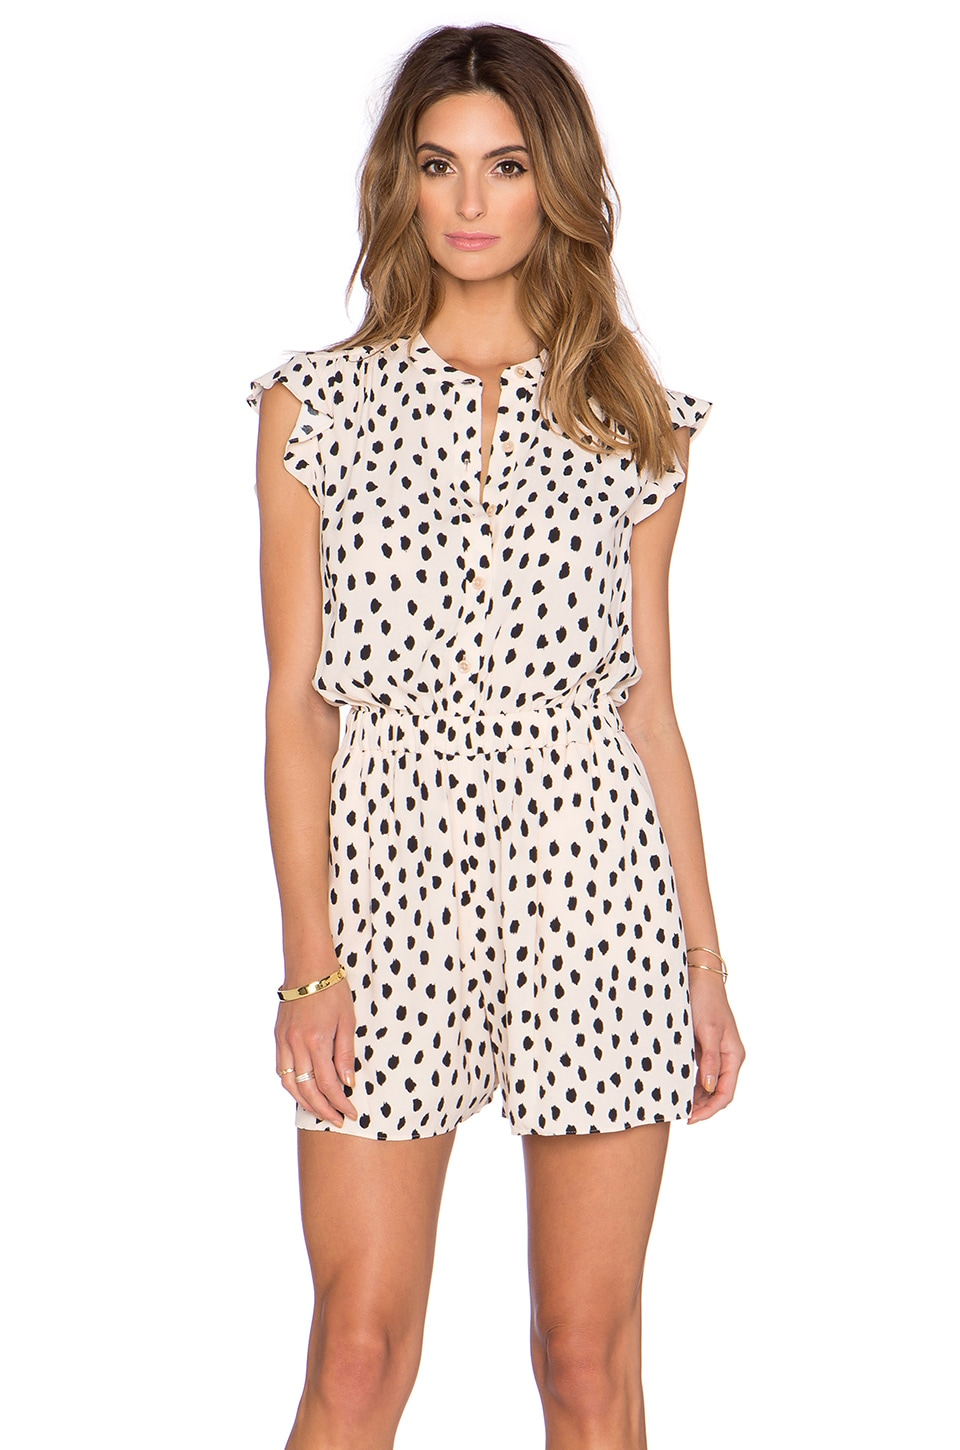 kate spade new york Leopard Dot Romper in Shell